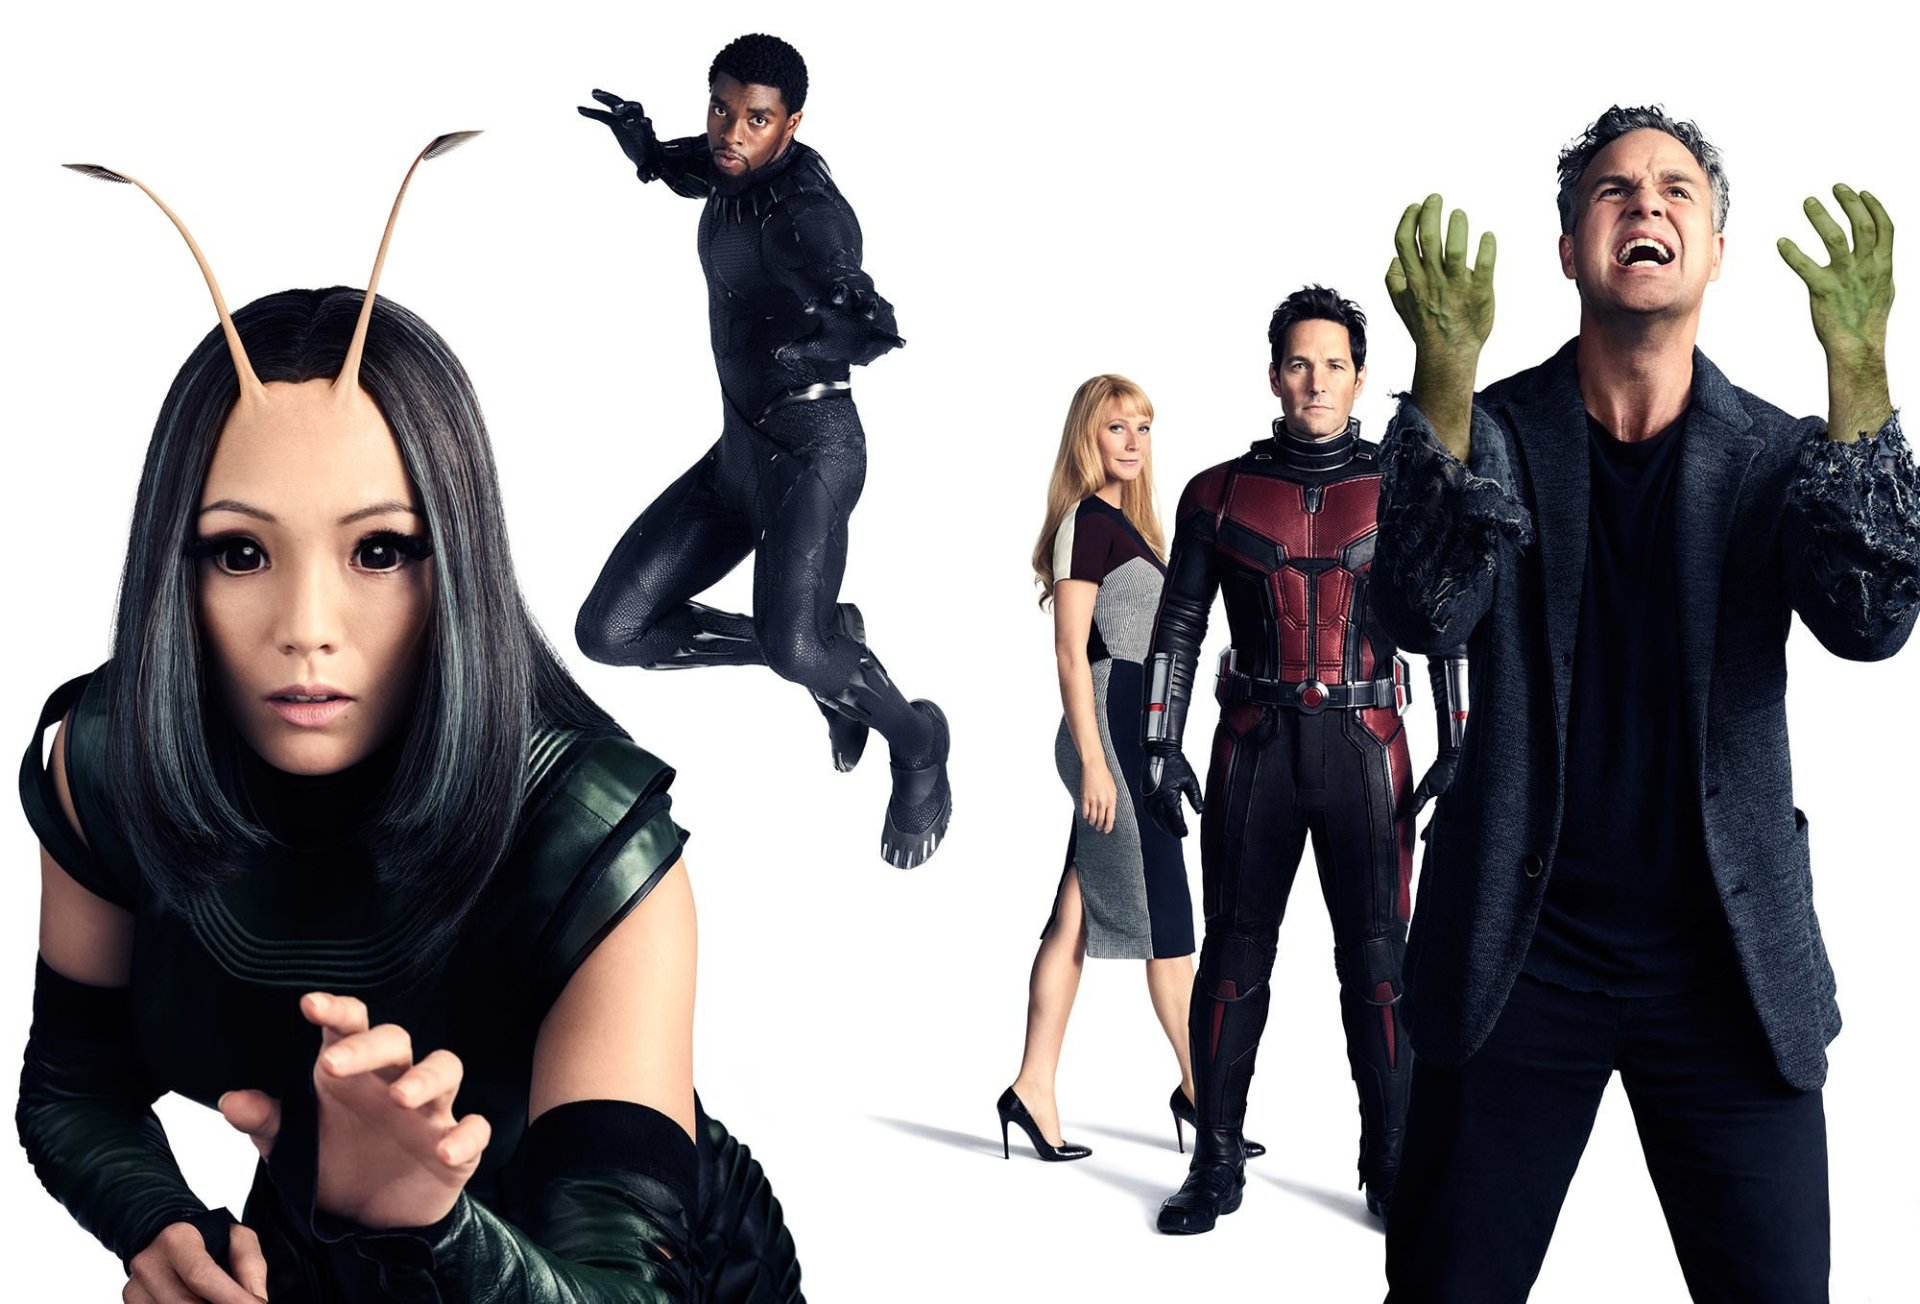 Movie - Avengers: Infinity War  Hulk Gwyneth Paltrow Black Panther (Marvel Comics) Ant-Man Paul Rudd Mark Ruffalo Pepper Potts Chadwick Boseman Bruce Banner Mantis (Marvel Comics) Pom Klementieff Wallpaper